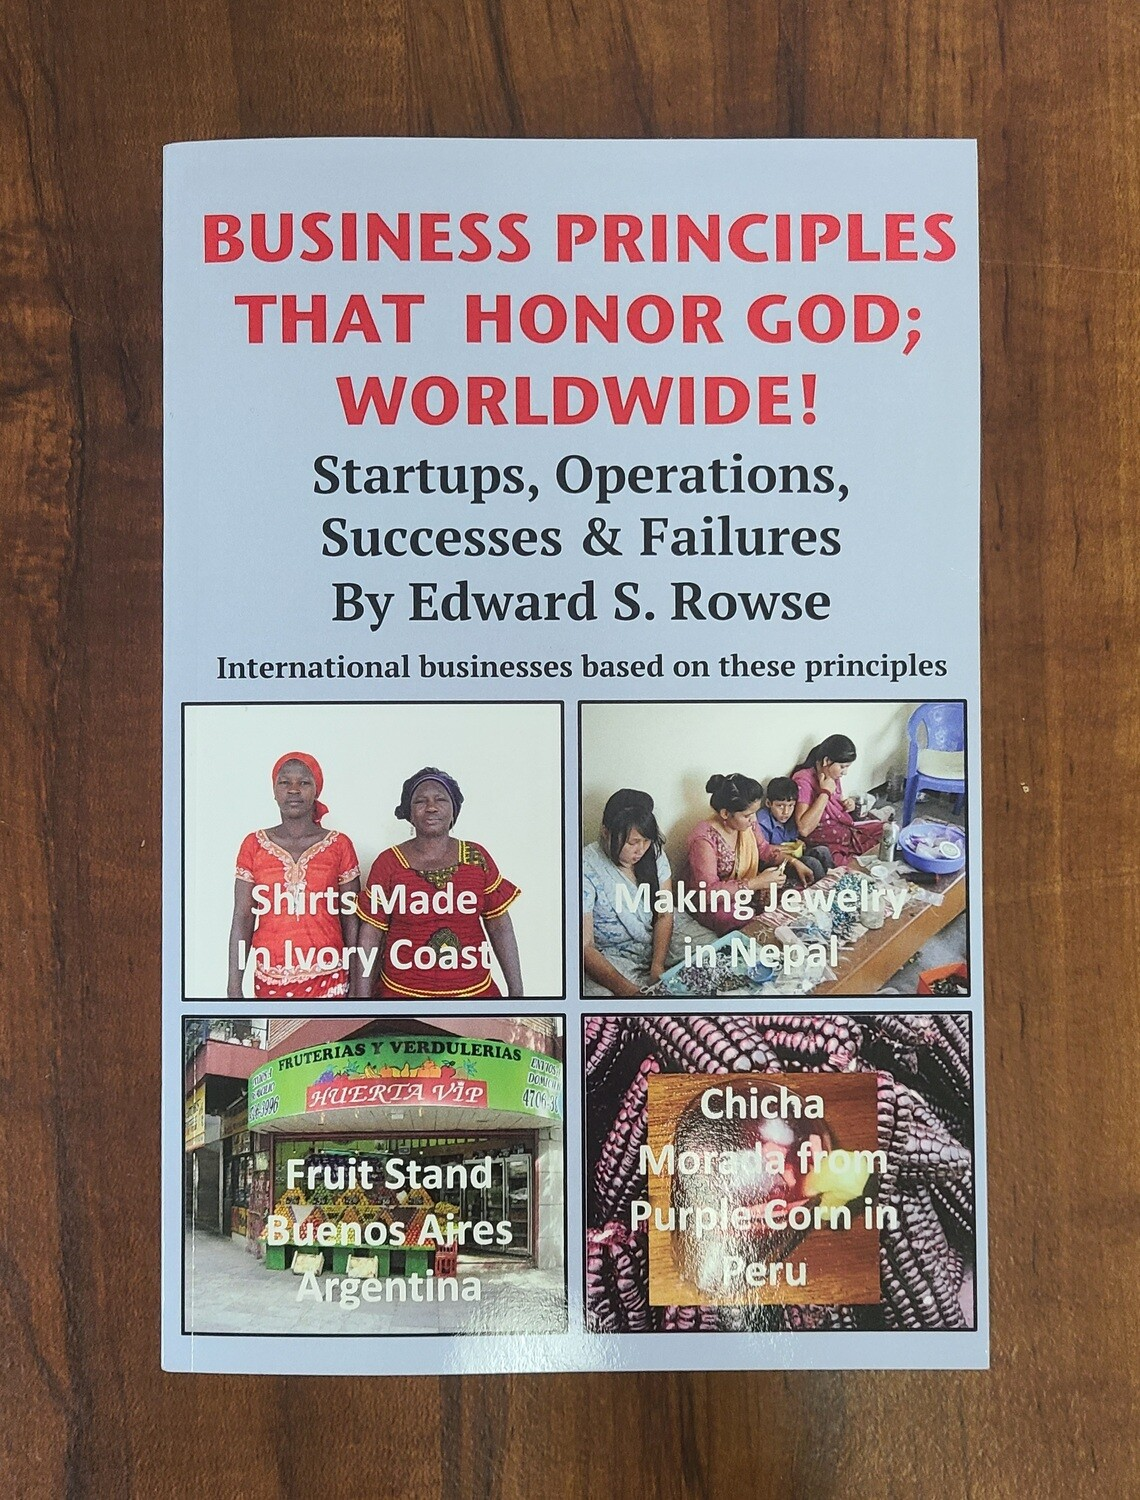 Business Principles That Honor God; Worldwide! - Startups, Operations, Successes, and Failures by Edward S. Rowse